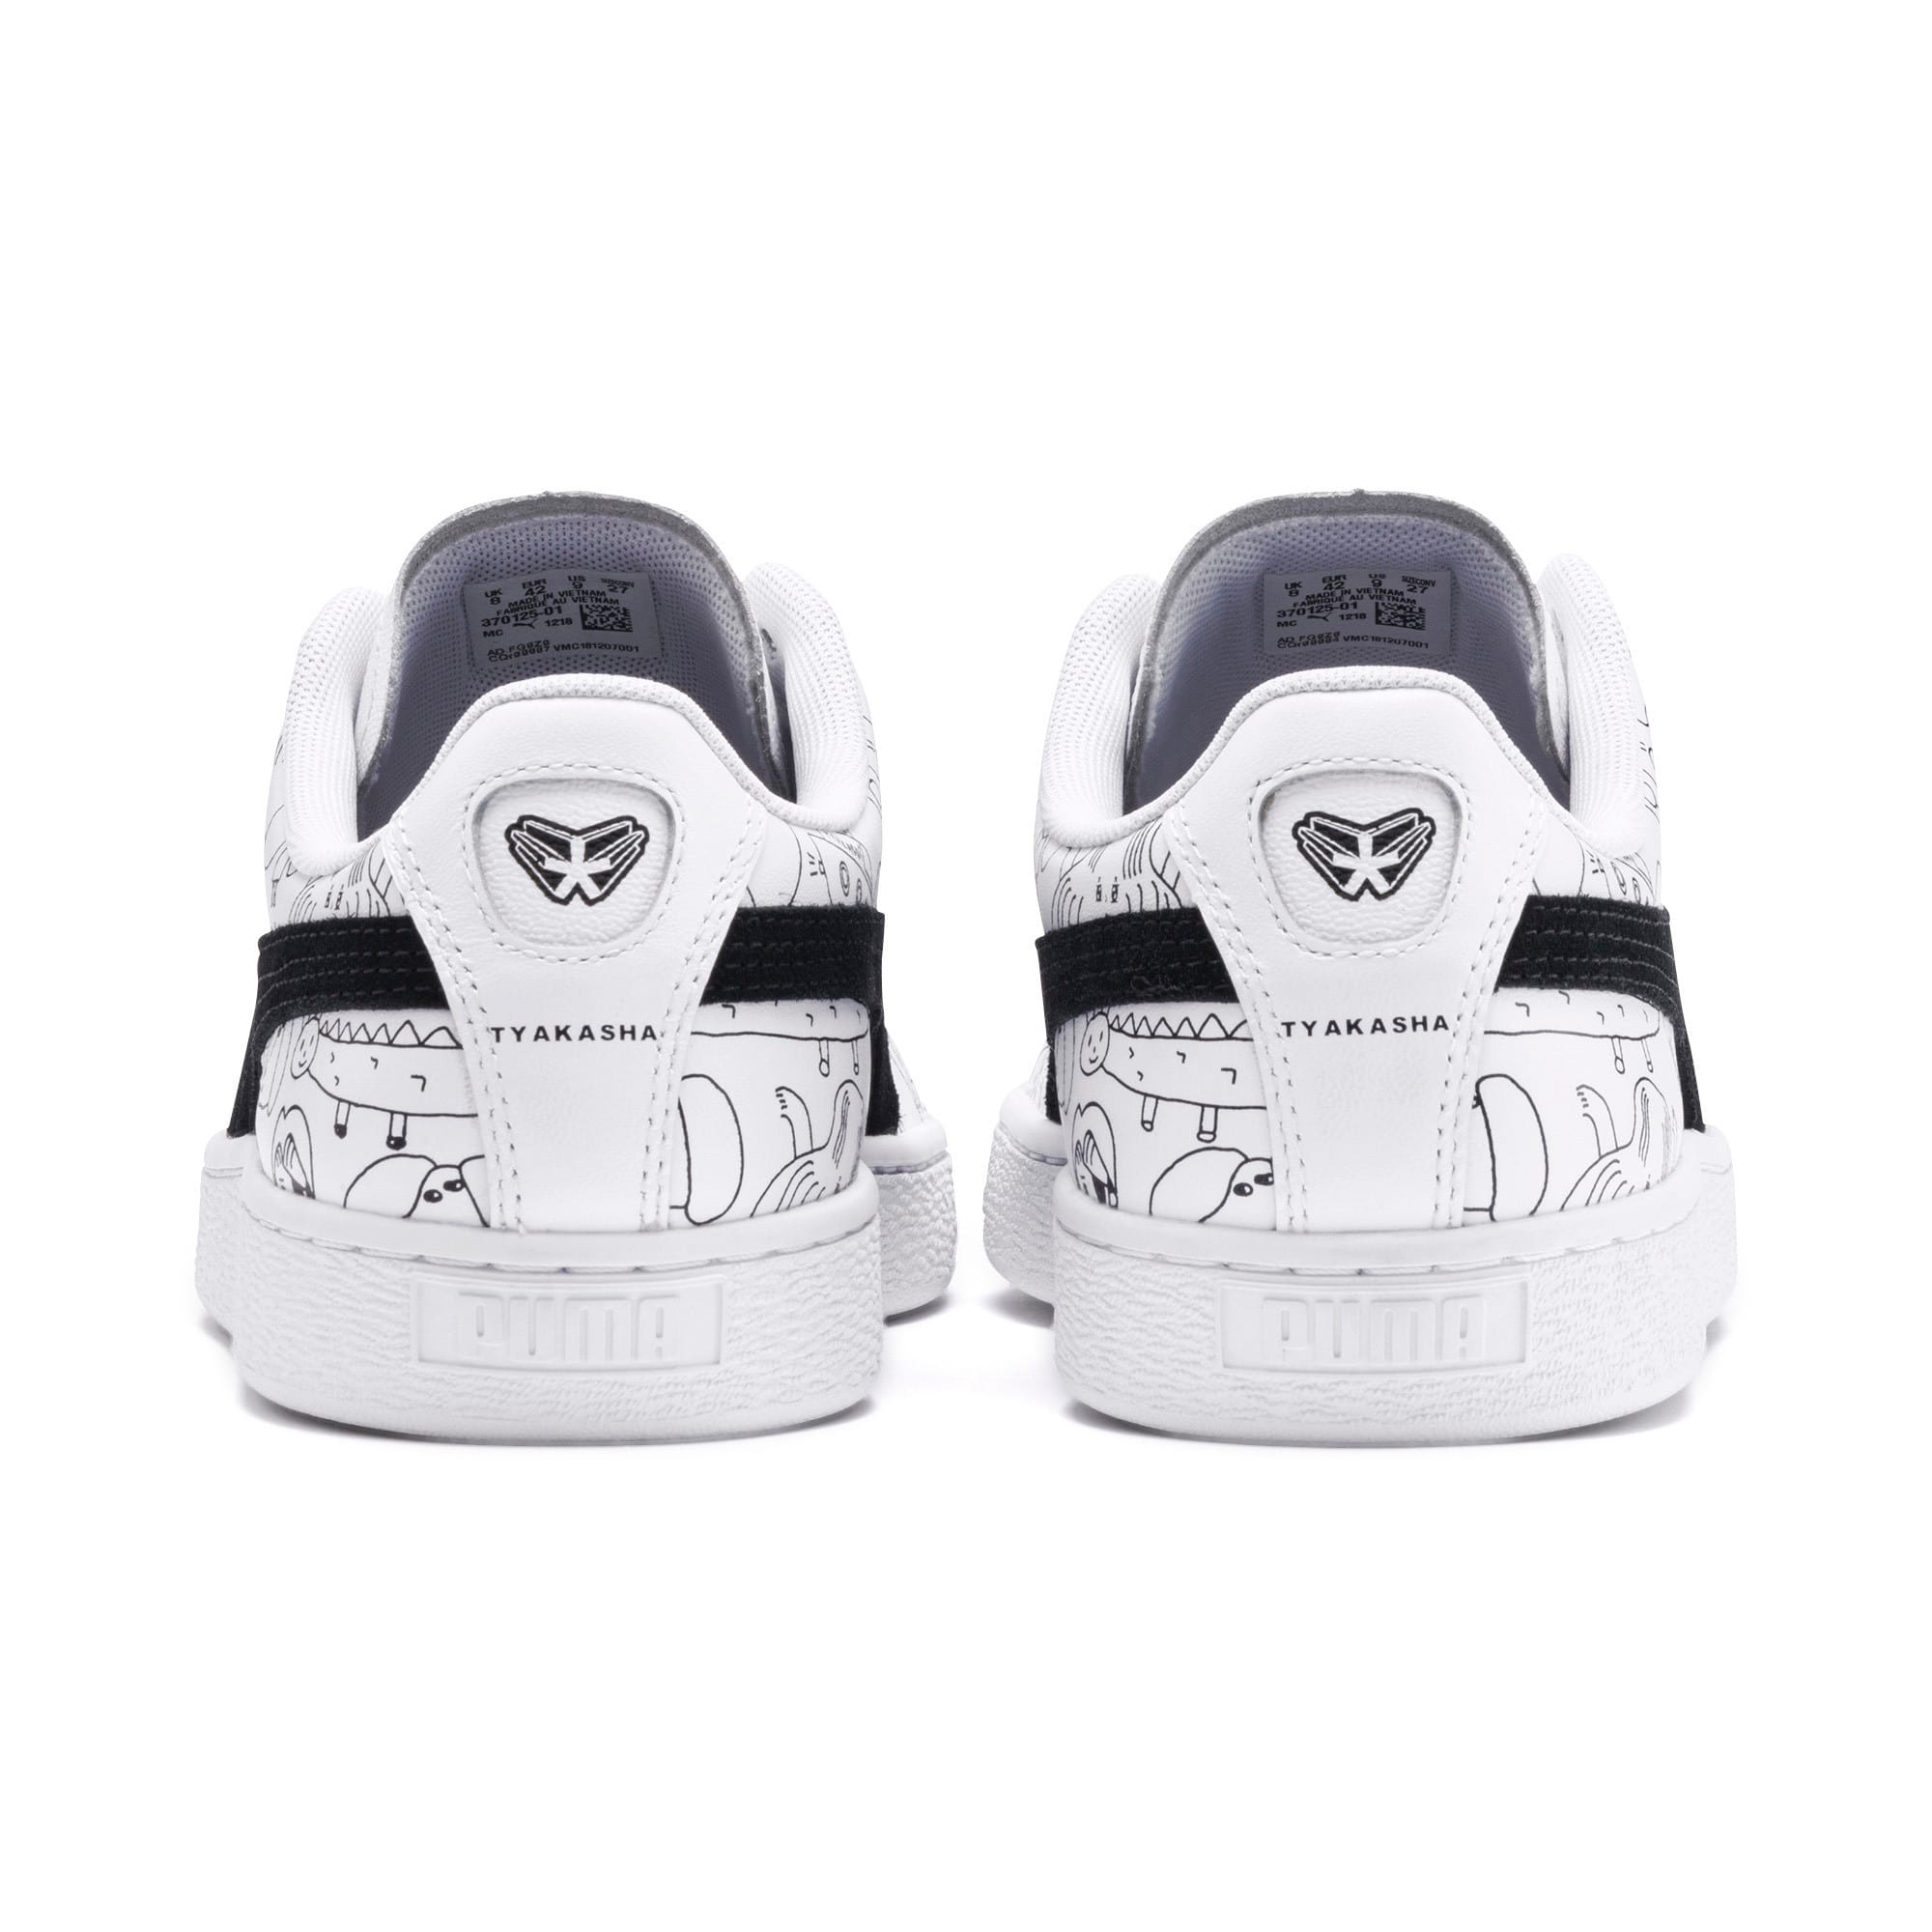 Thumbnail 5 of PUMA x TYAKASHA Basket Trainers, Puma White-Puma Black, medium